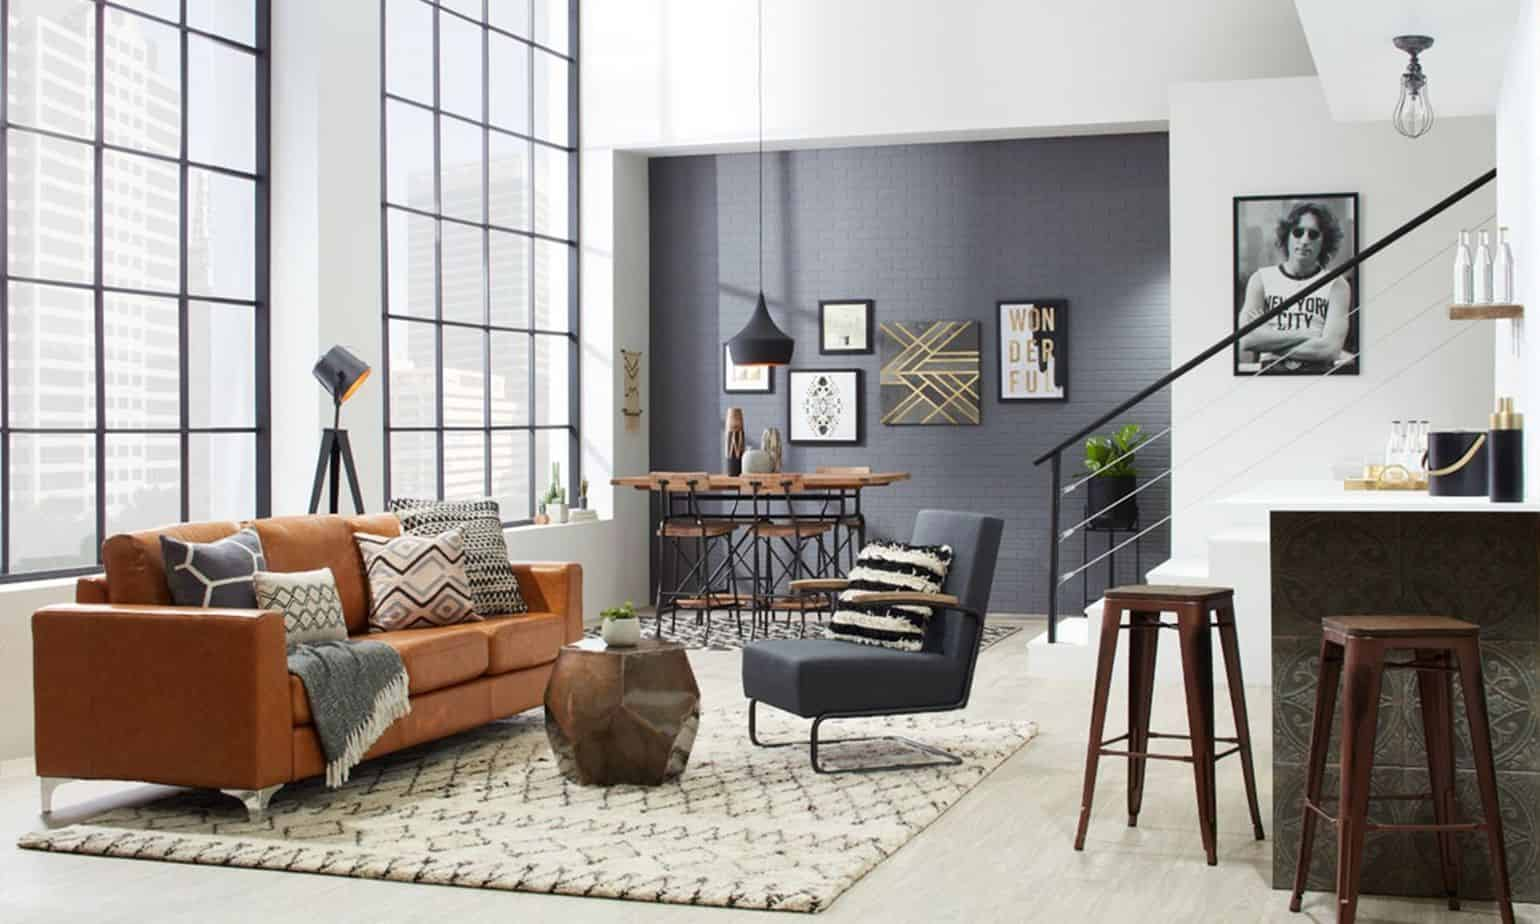 living room design ideas 2021 urban industrial style